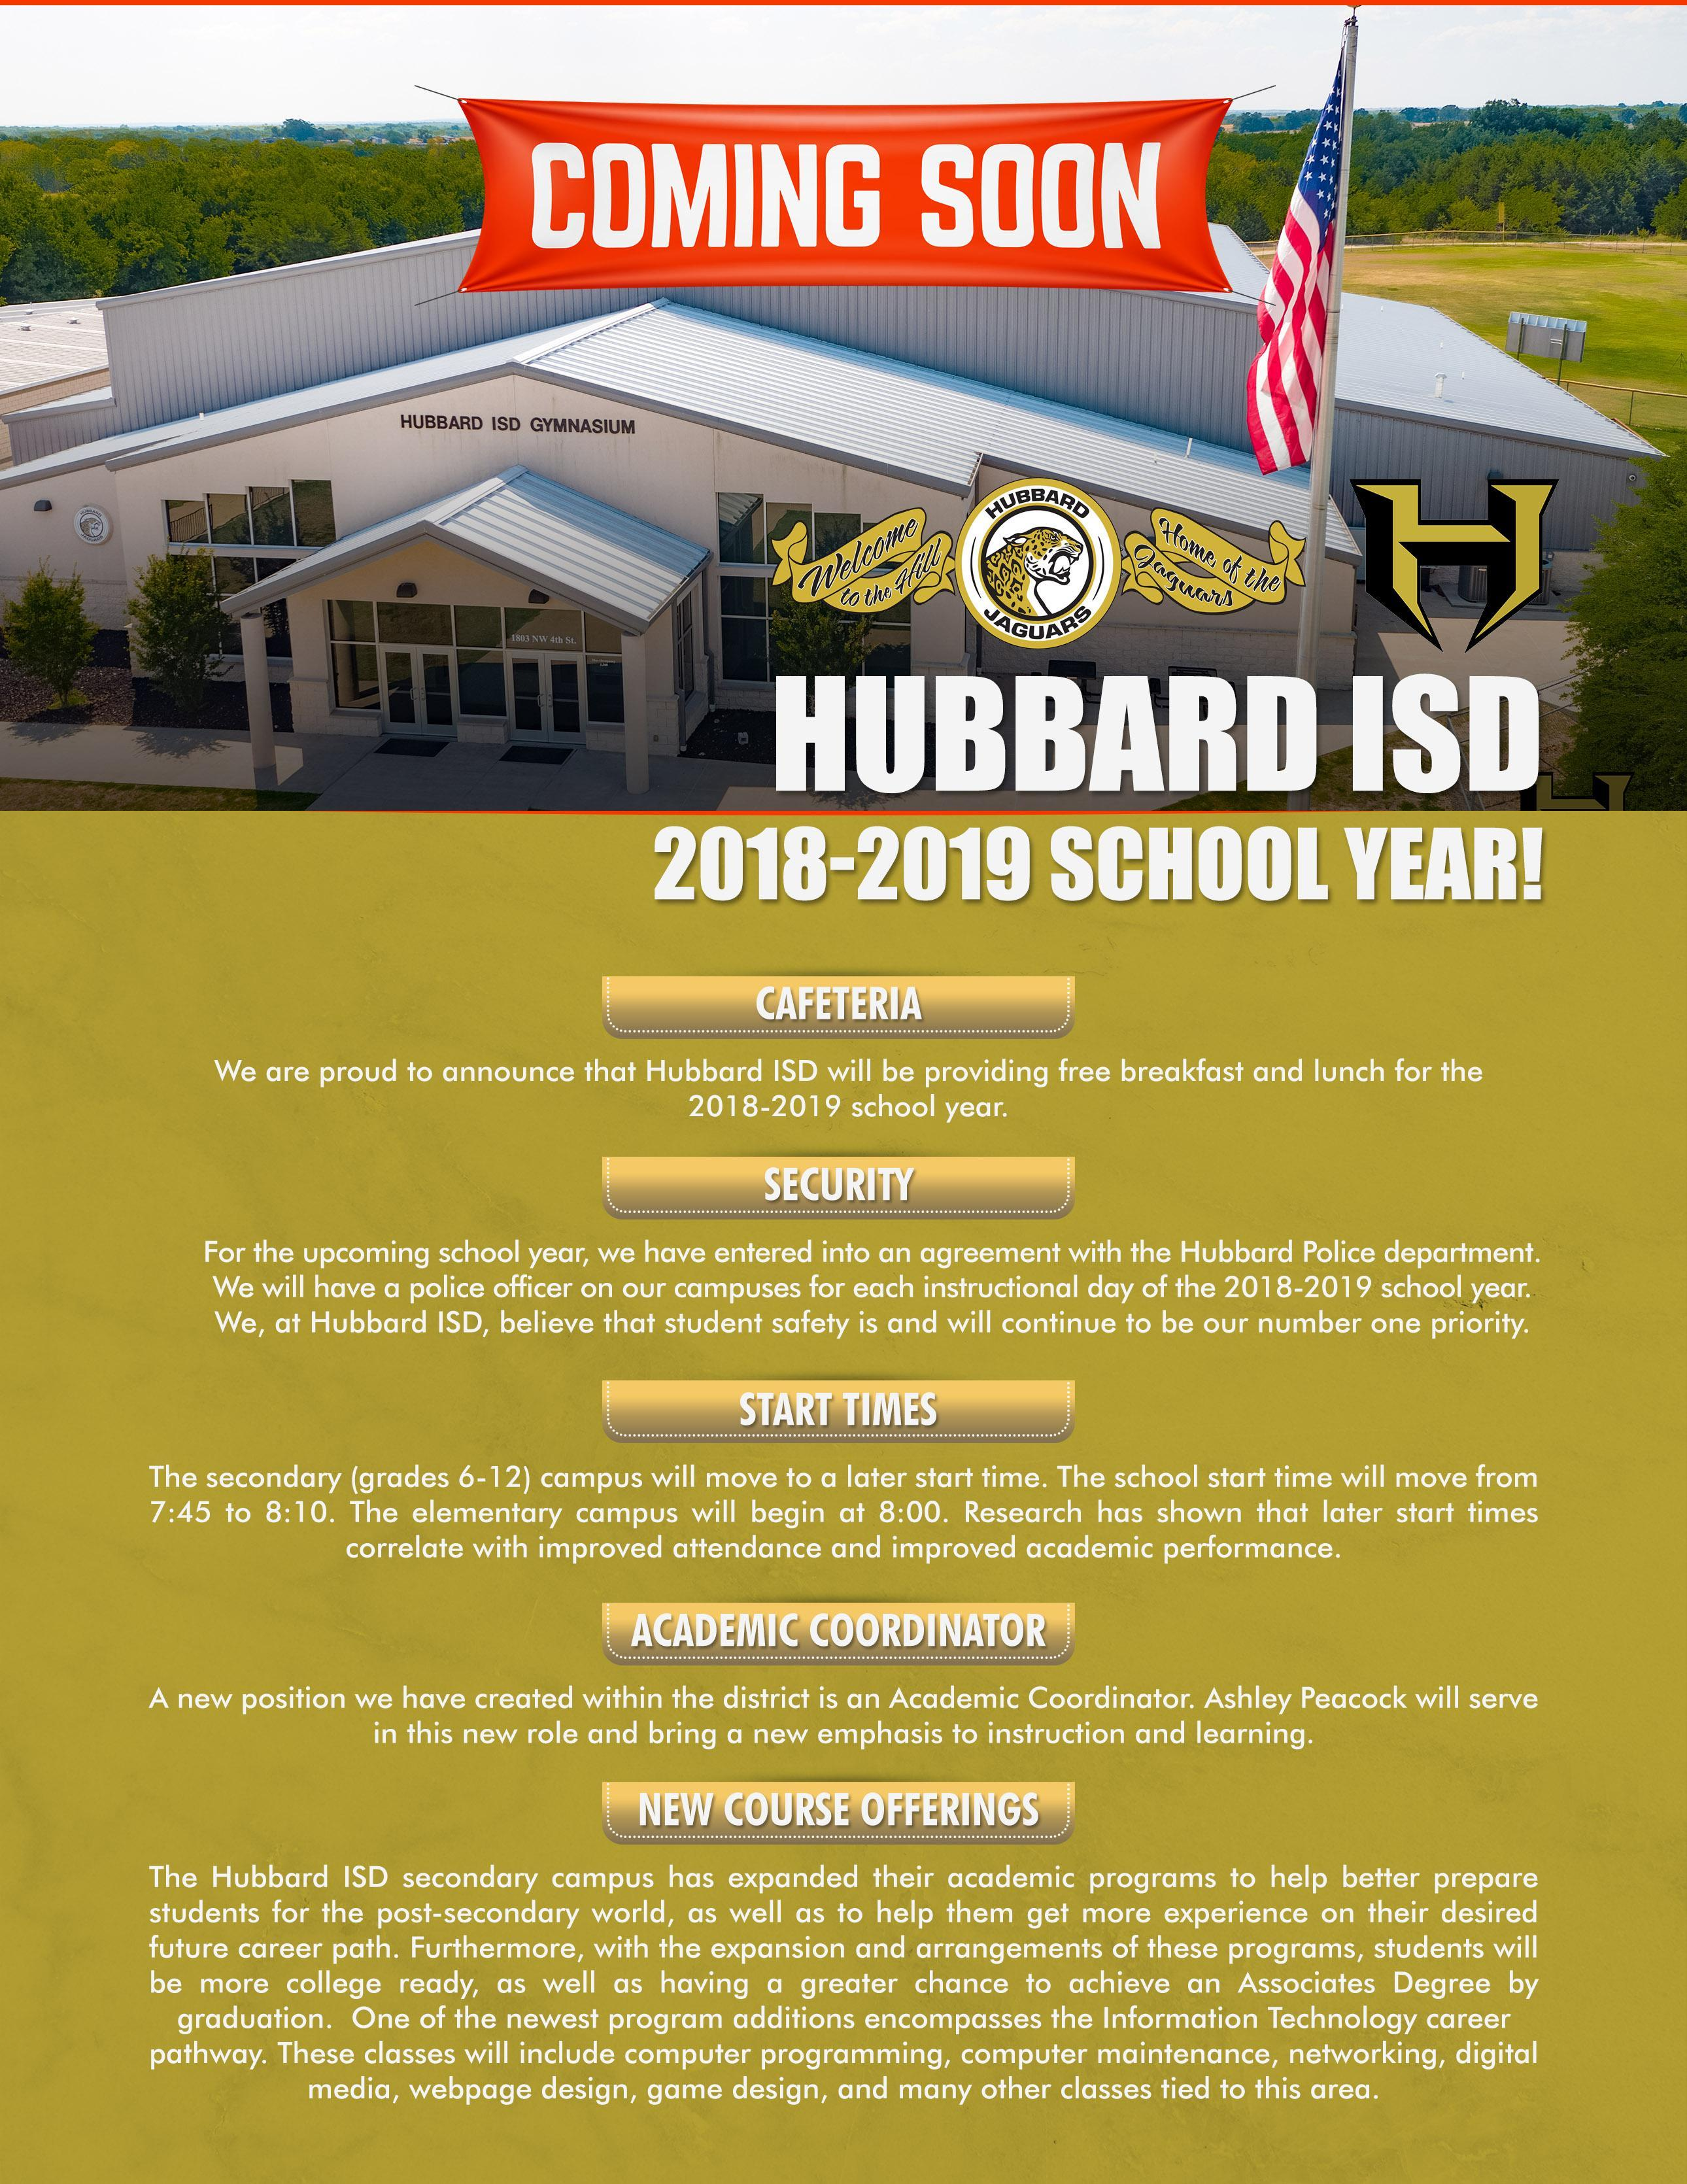 2018-2019 Changes to Hubbard ISD - Page 1